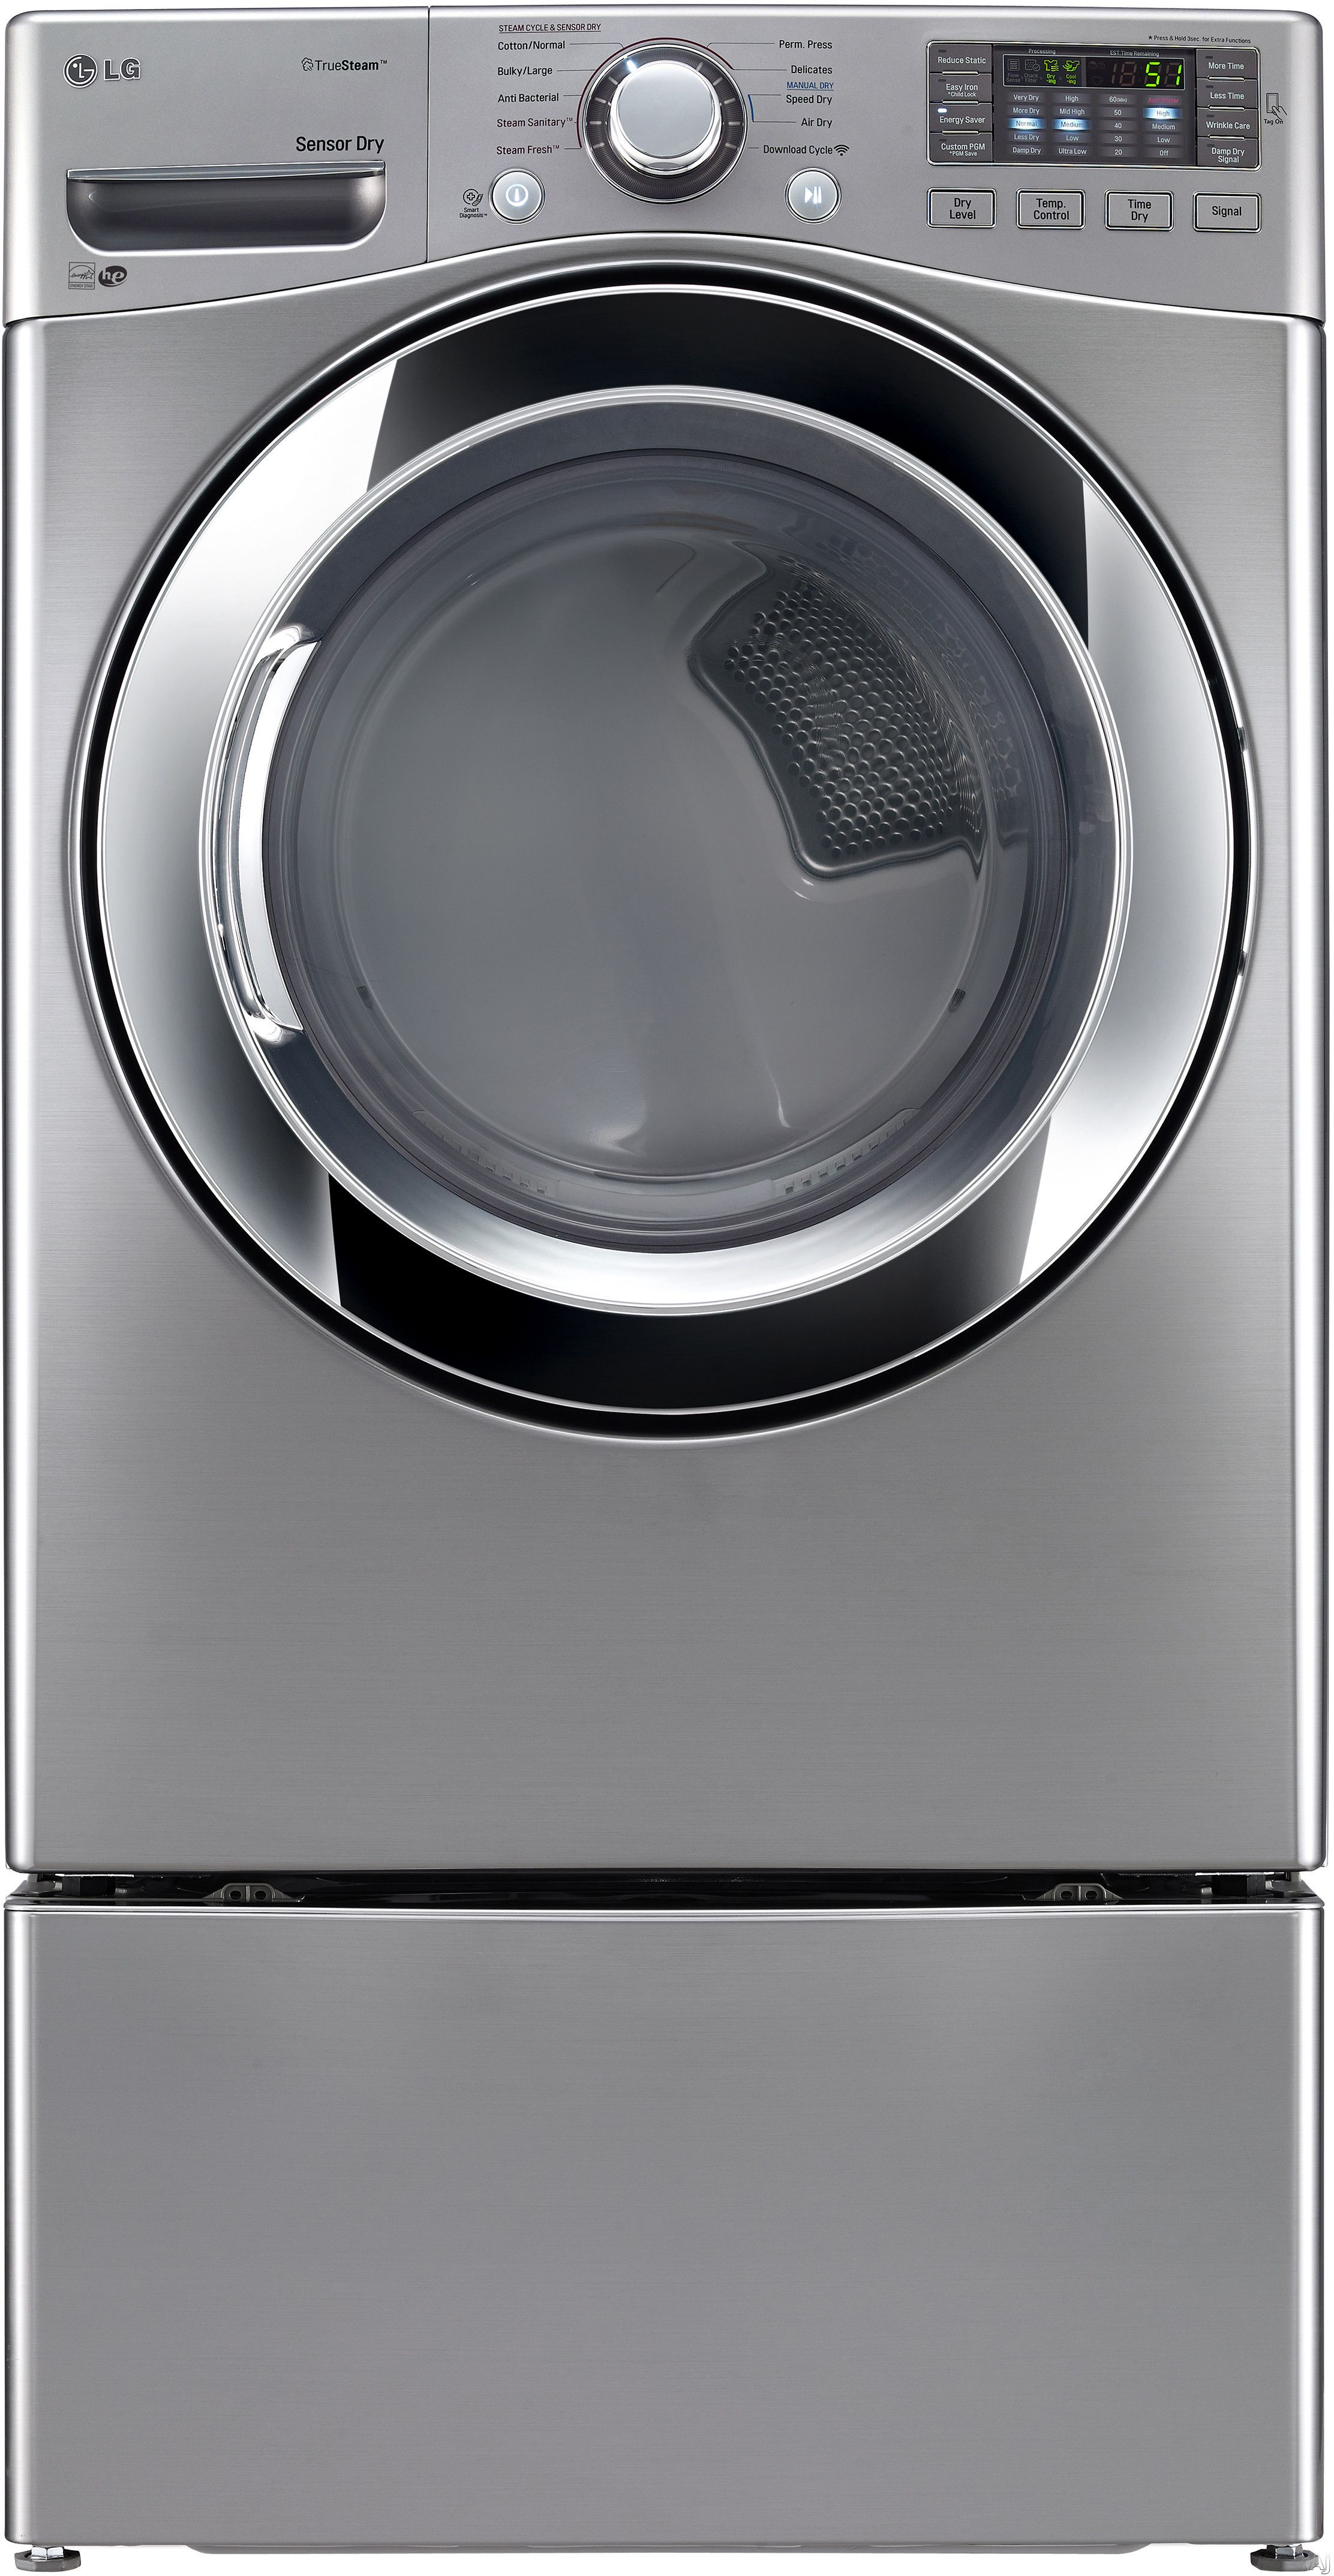 Lg Dlex3370v 27 Electric Dryer With 7 4 Cu Ft Capacity 10